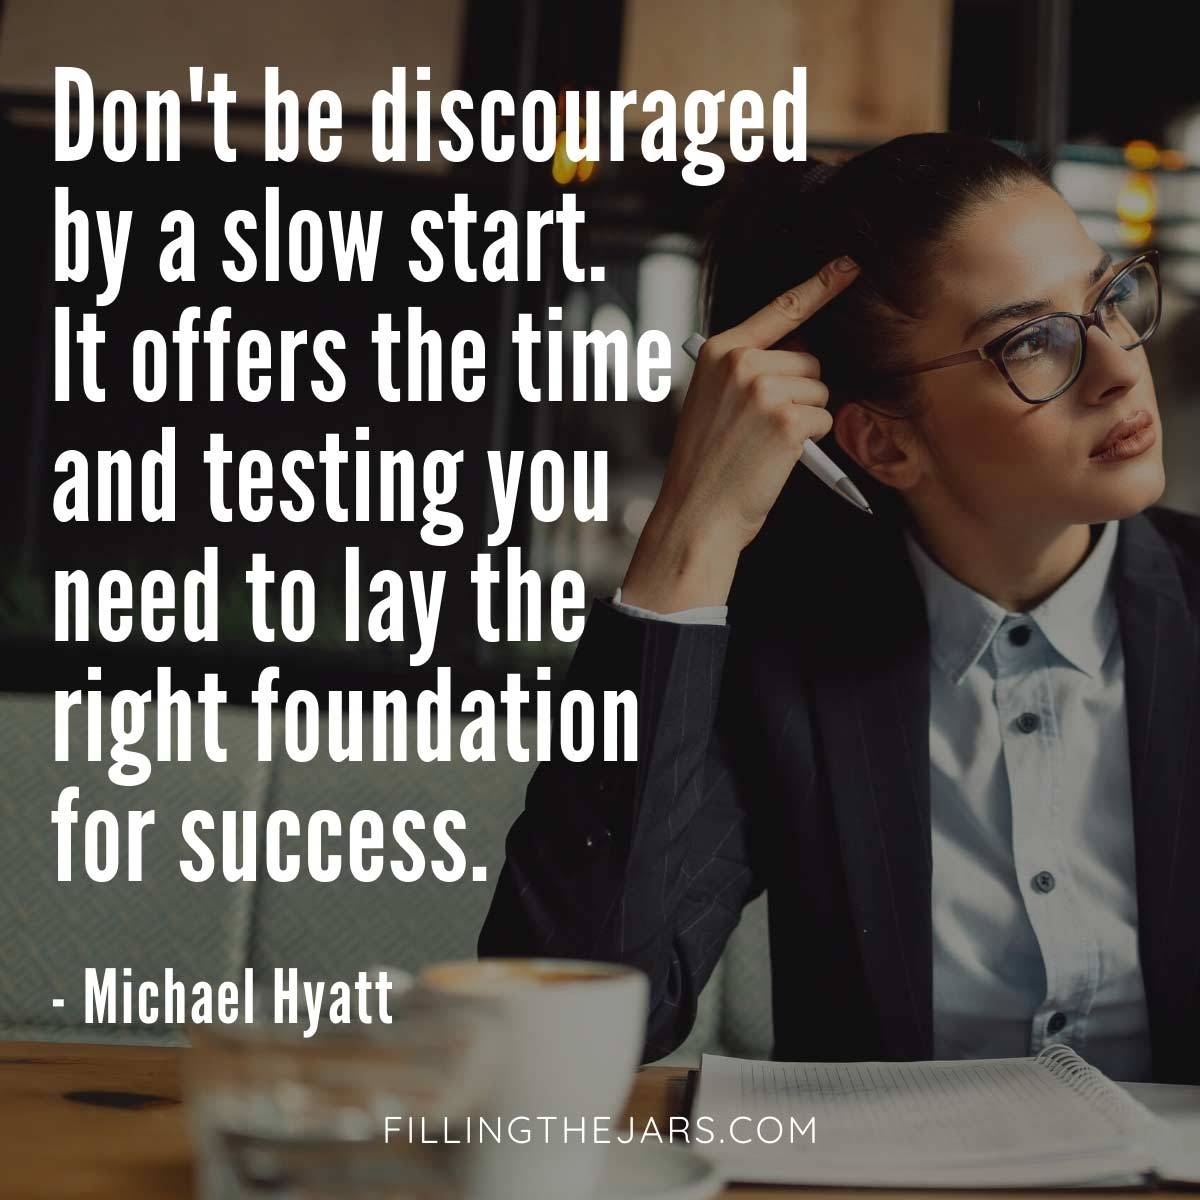 Michael Hyatt slow start quote in white text over background of young woman wearing glasses and business attire working at a cafe table.